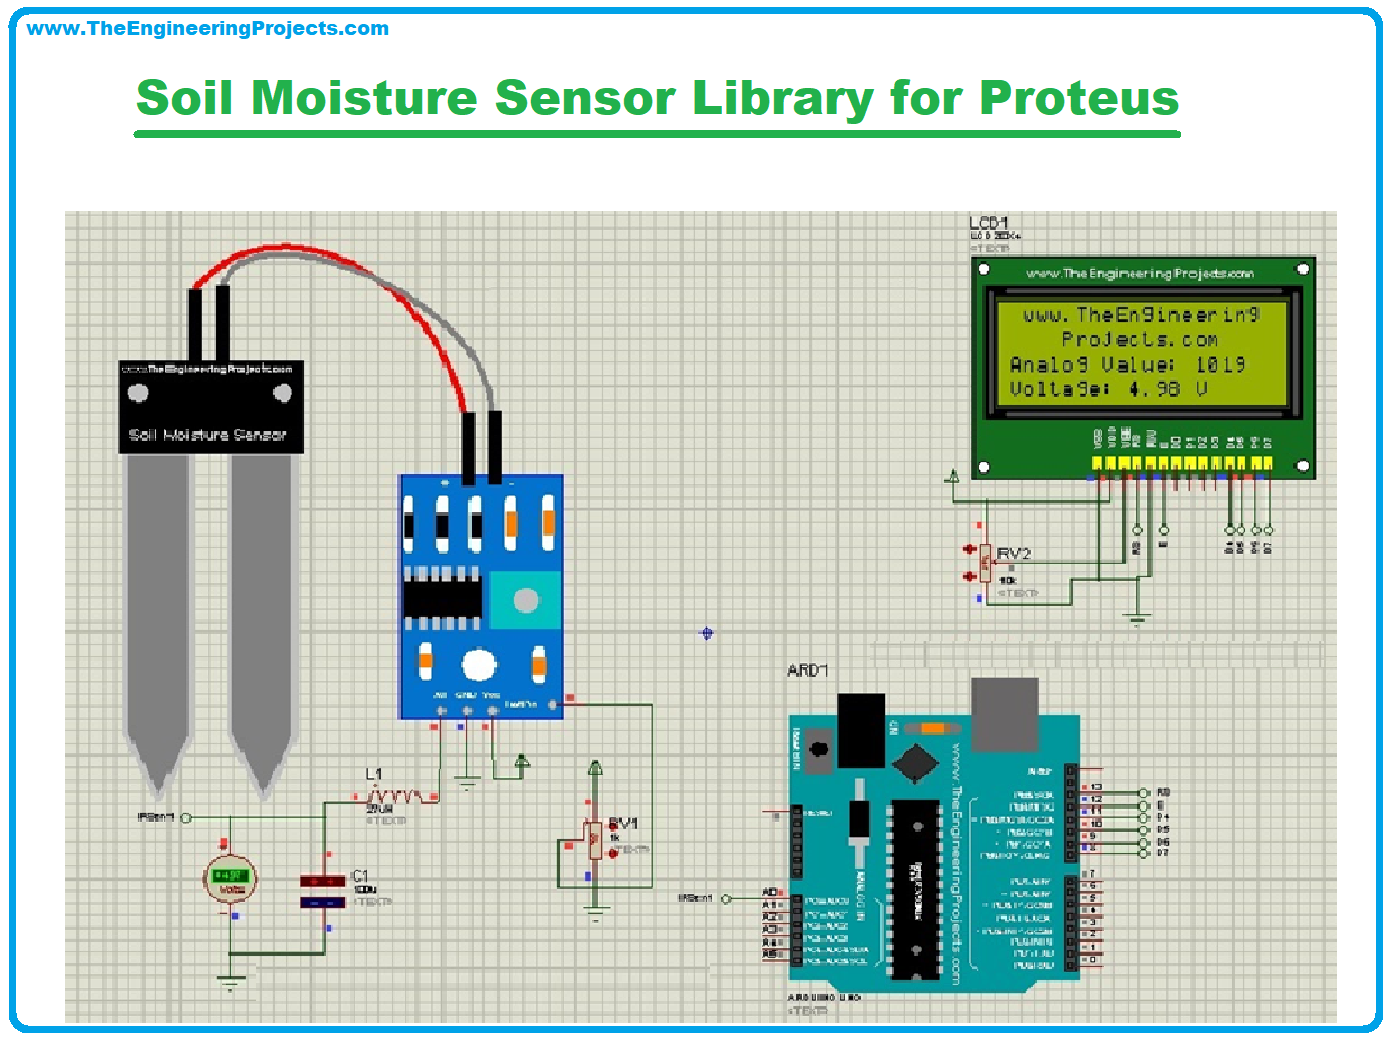 Latest Proteus Libraries, Latest Proteus Libraries for Engineering Students V2.0, Arduino Libraries for Proteus V2.0 , Arduino Mega 1280 Library for Proteus V2.0, Arduino Mega 2560 Library for Proteus V2.0, Arduino Mini Library for Proteus V2.0, Arduino Pro Mini Library for Proteus V2.0, Arduino Nano Library for Proteus V2.0, Analog Sensors Libraries for Proteus V2.0